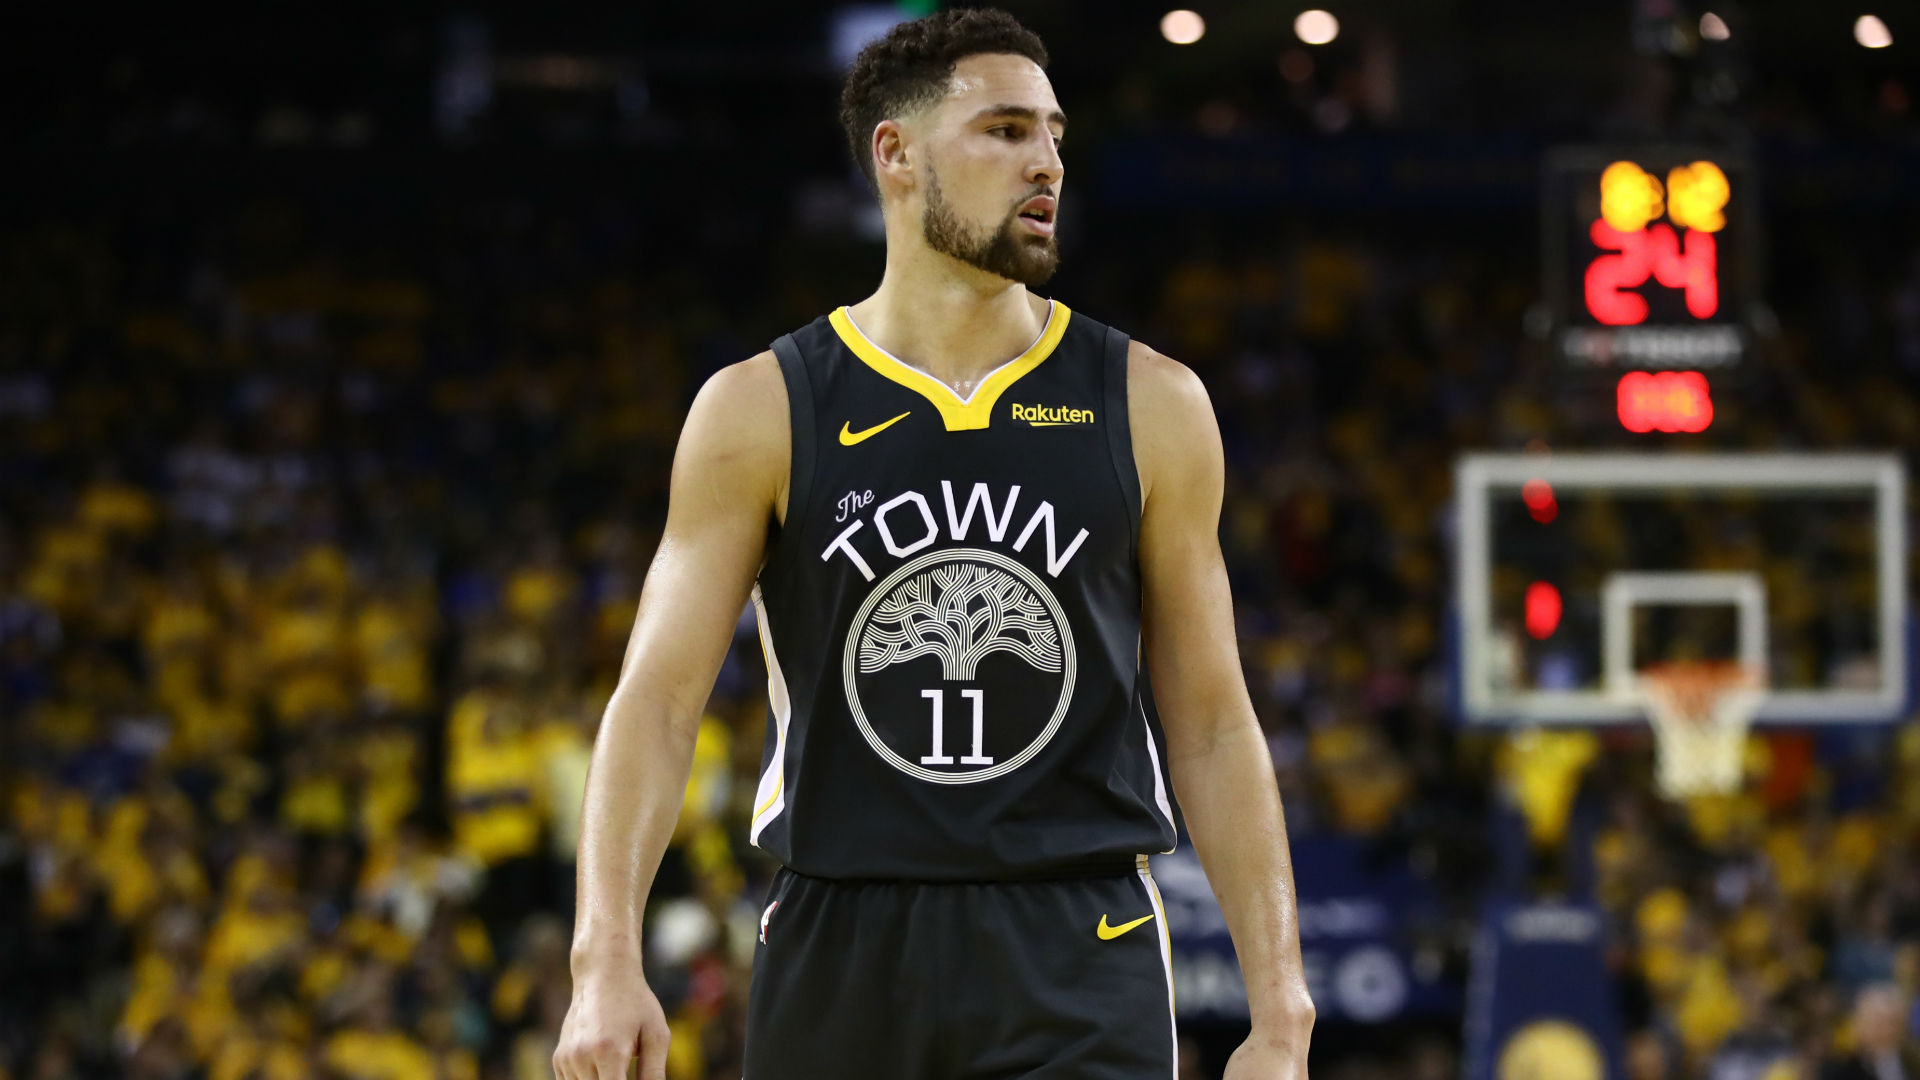 Warriors' Klay Thompson speaks on knee injury, motivation for next season